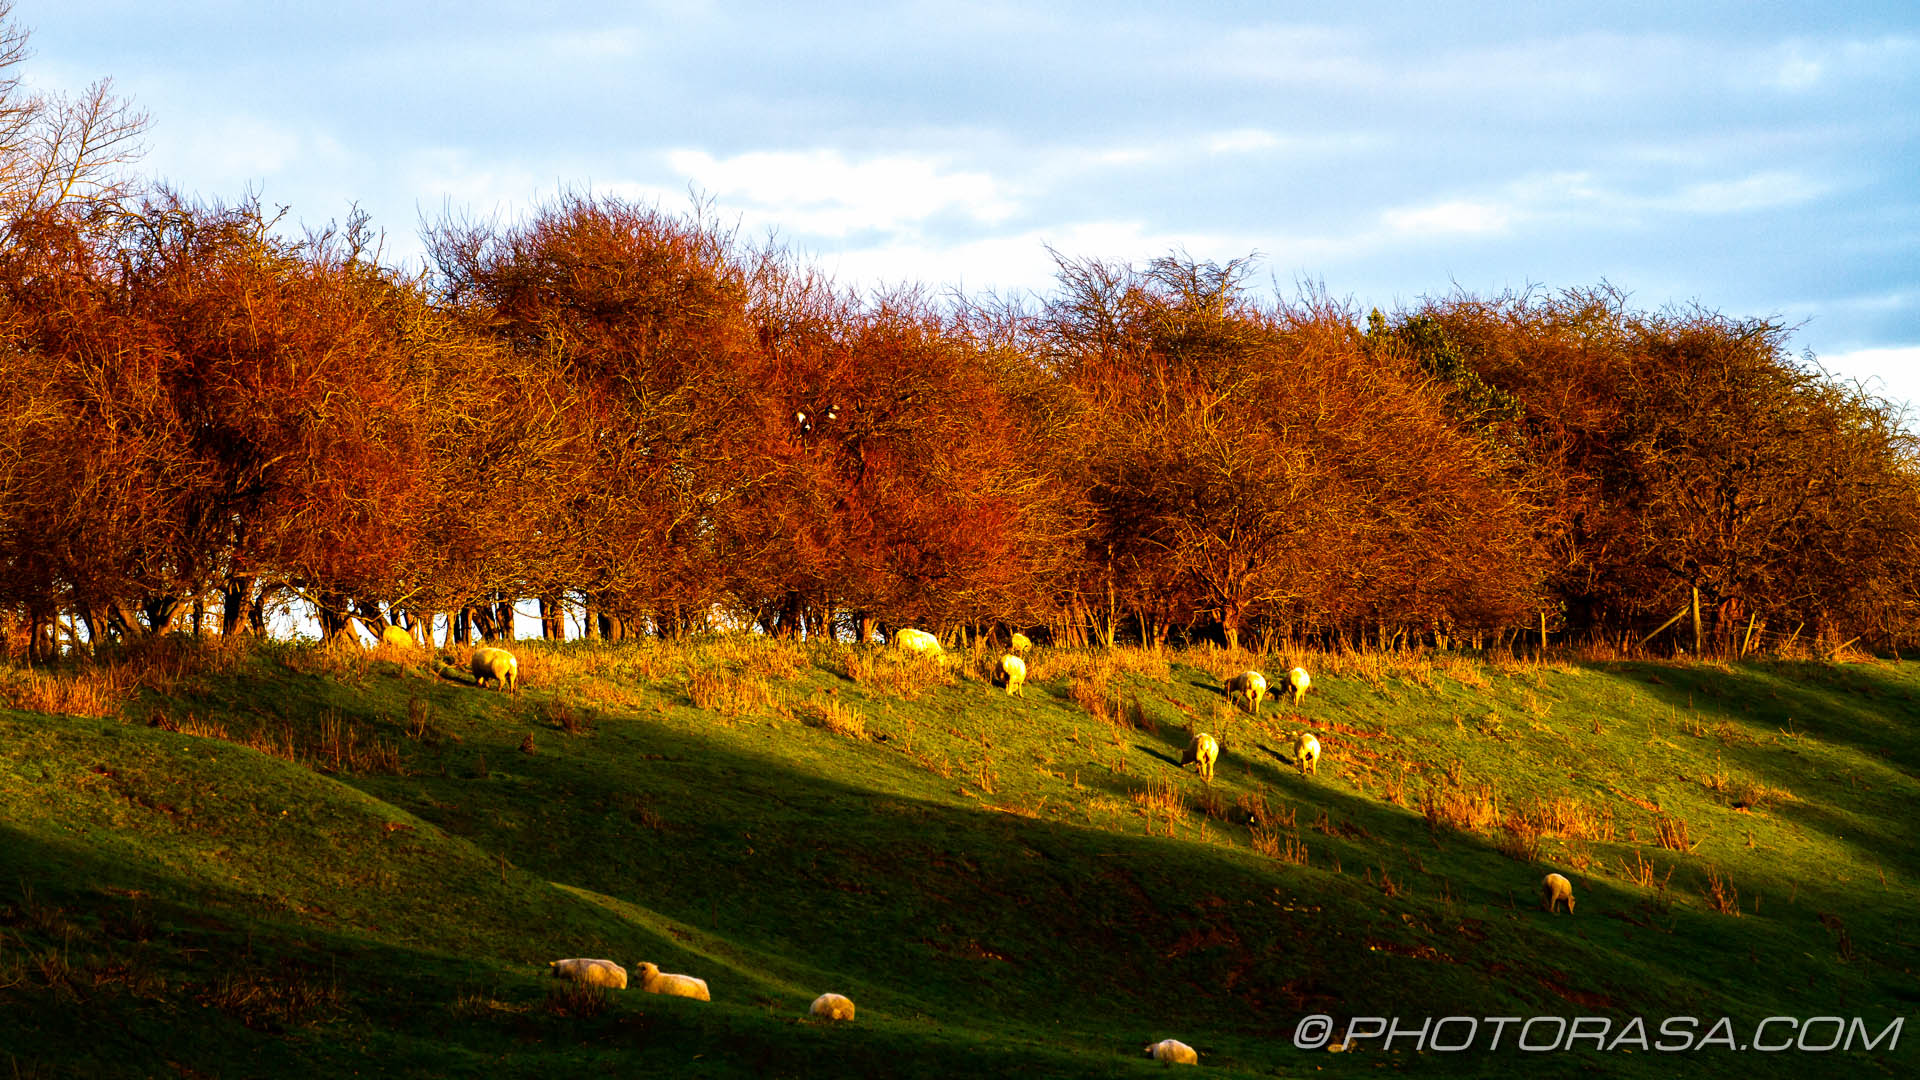 http://photorasa.com/countryside-otham/light-on-sheep-and-treeline-at-top-of-hill/